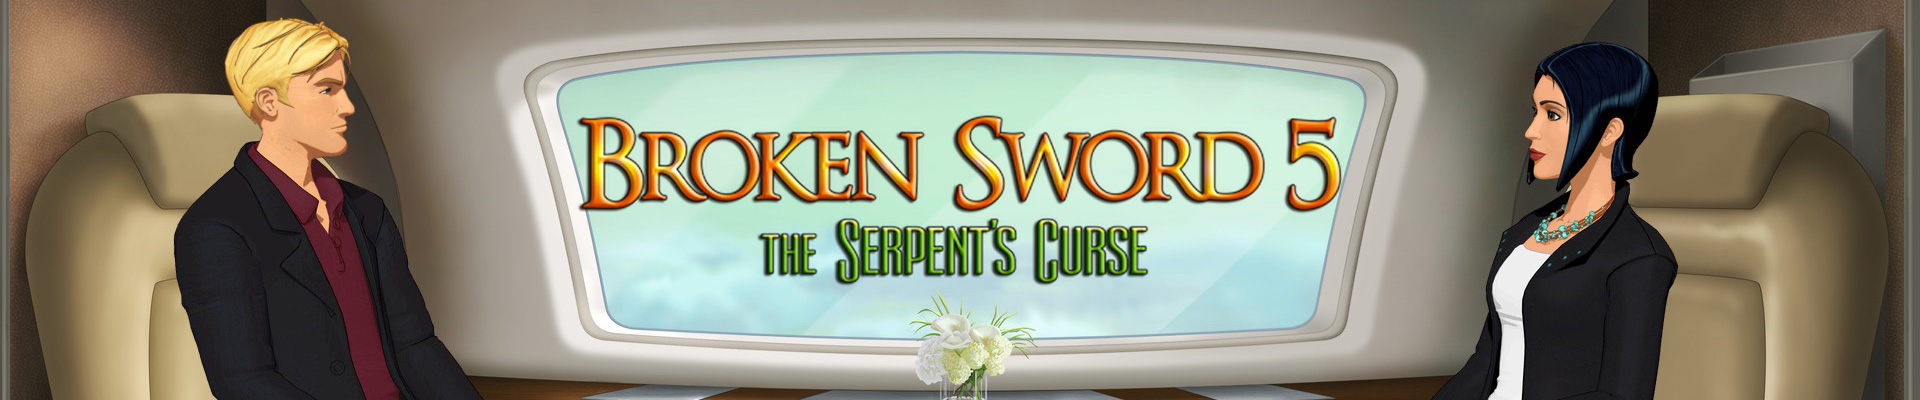 Thoughts on: Broken Sword 5 – the Serpent's Curse